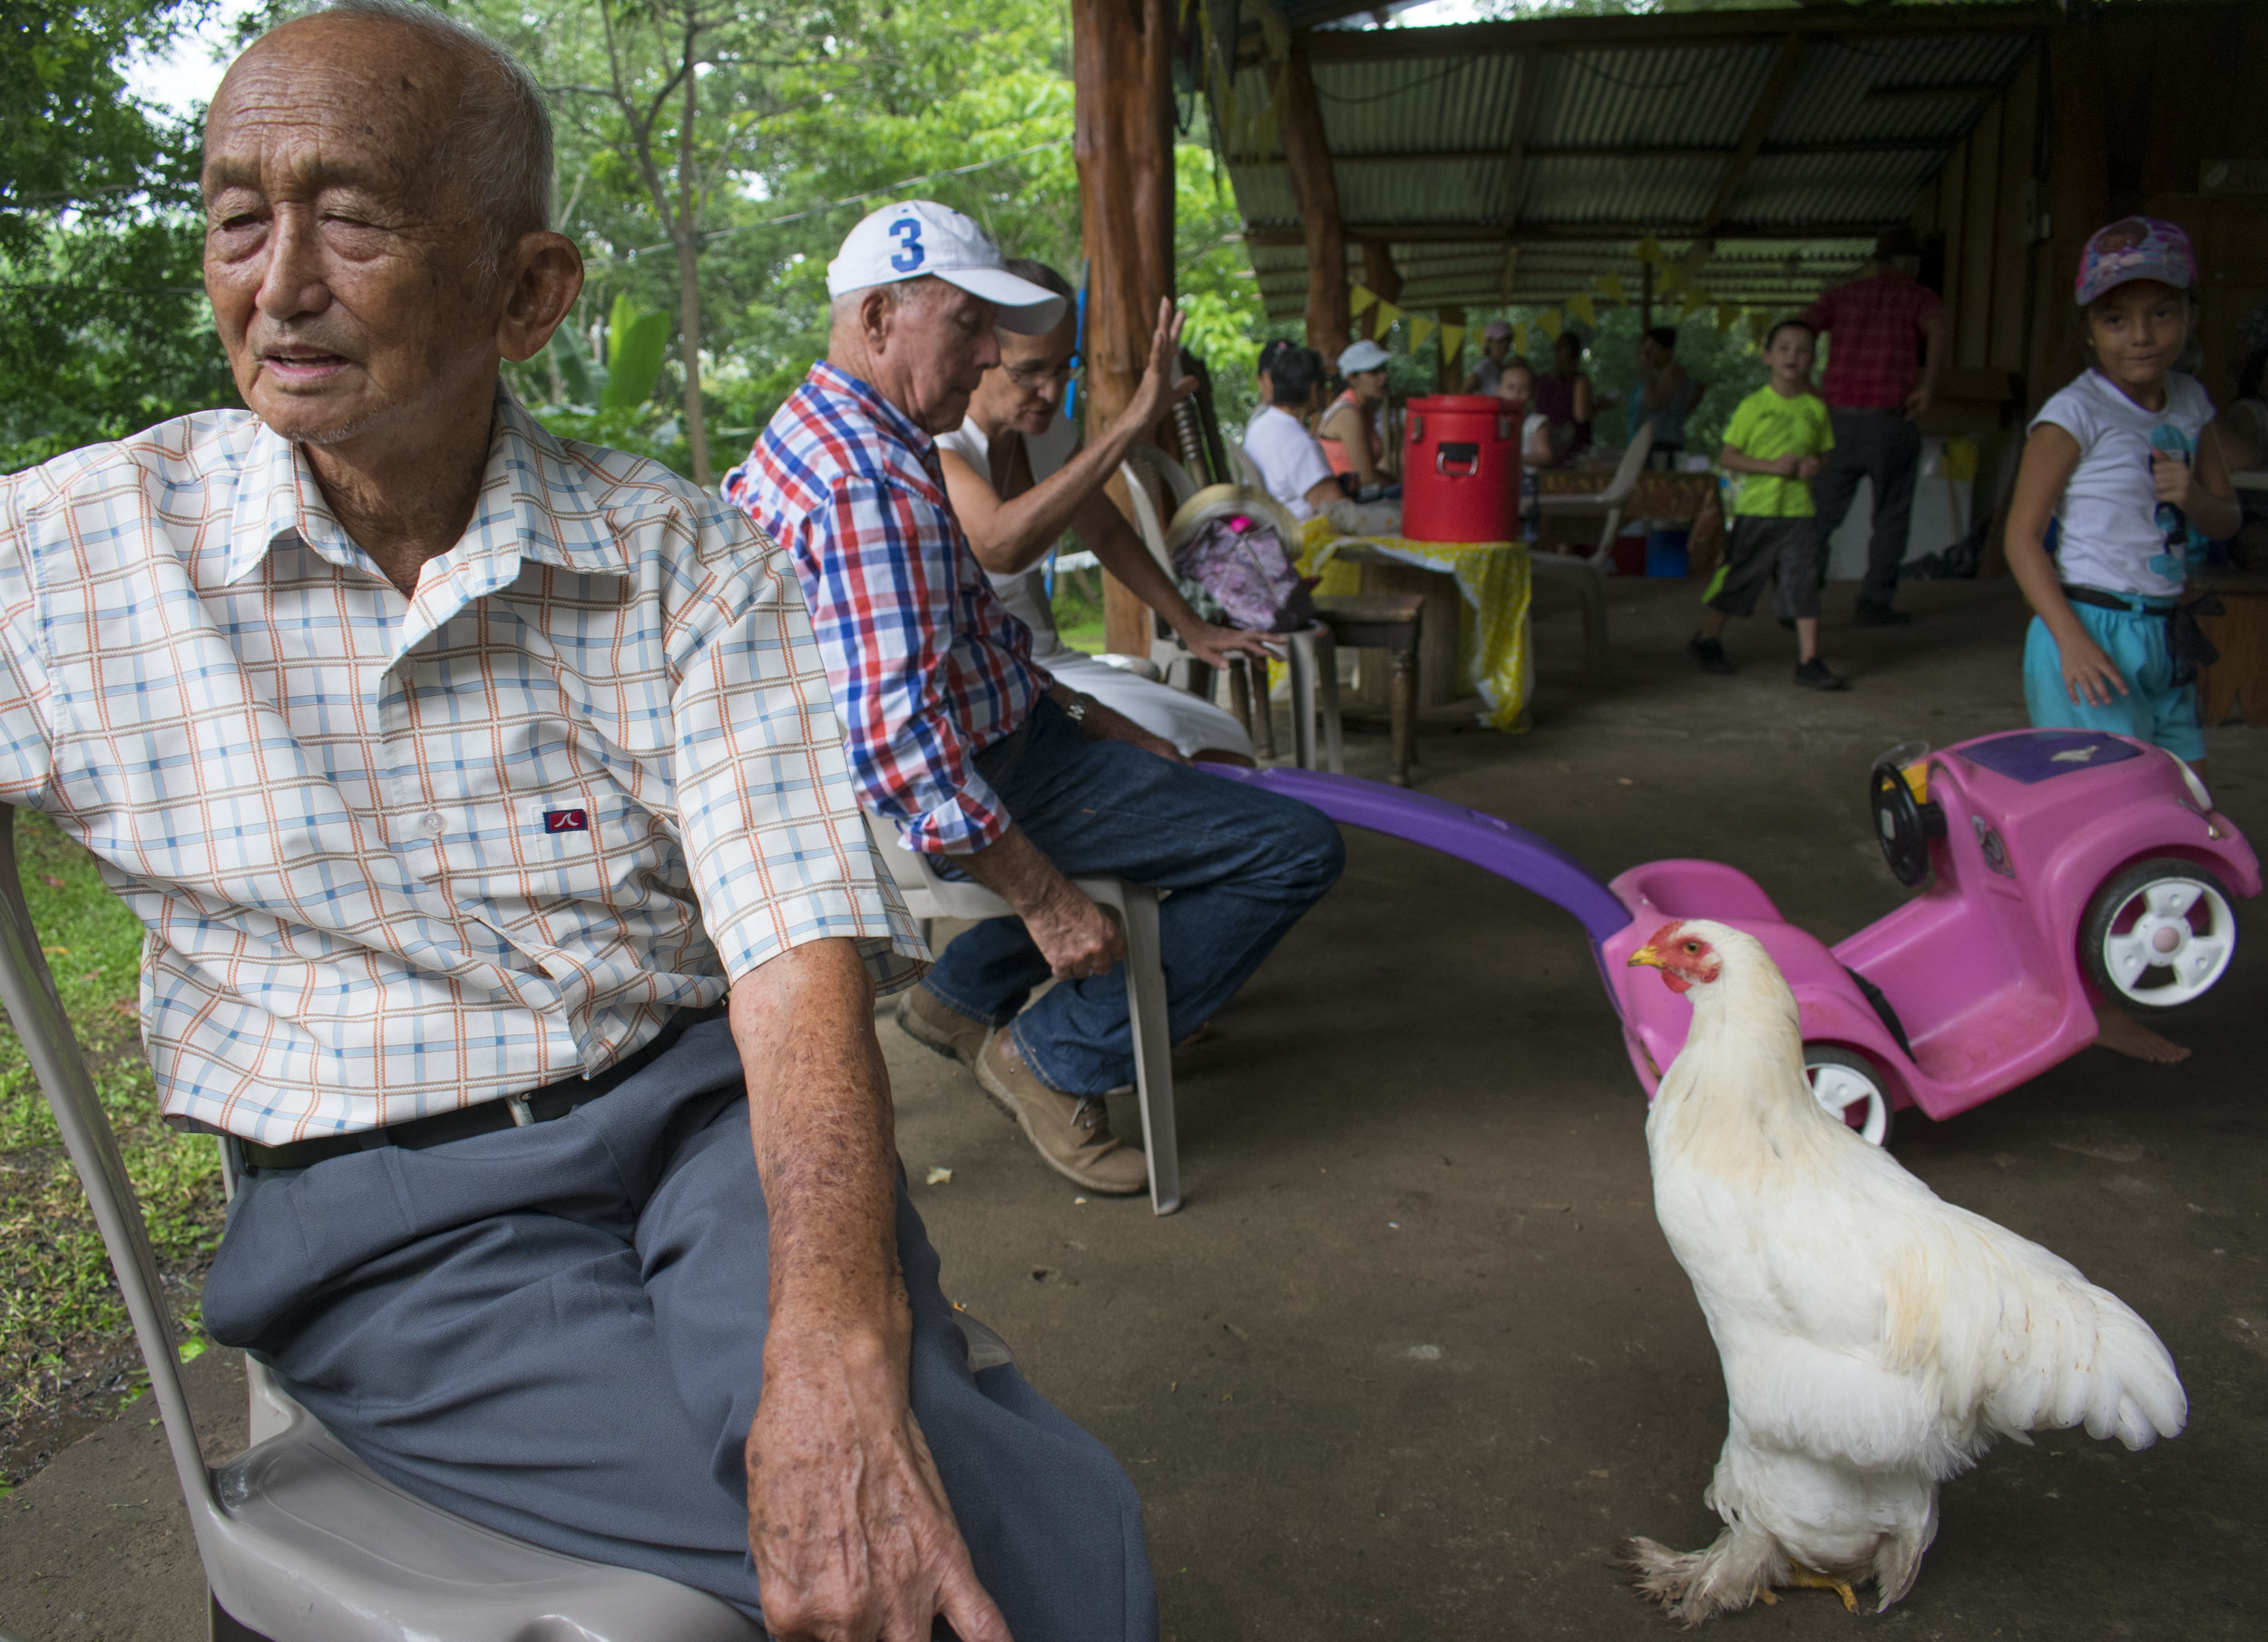 3. Hernán (Pipe) Chan rests at his farm after hosting a procession for his Virgen de los Ángeles, which was established to bring more religious awareness. Community members gathered at his house to enjoy Chinese food provided by the Chan .JPG